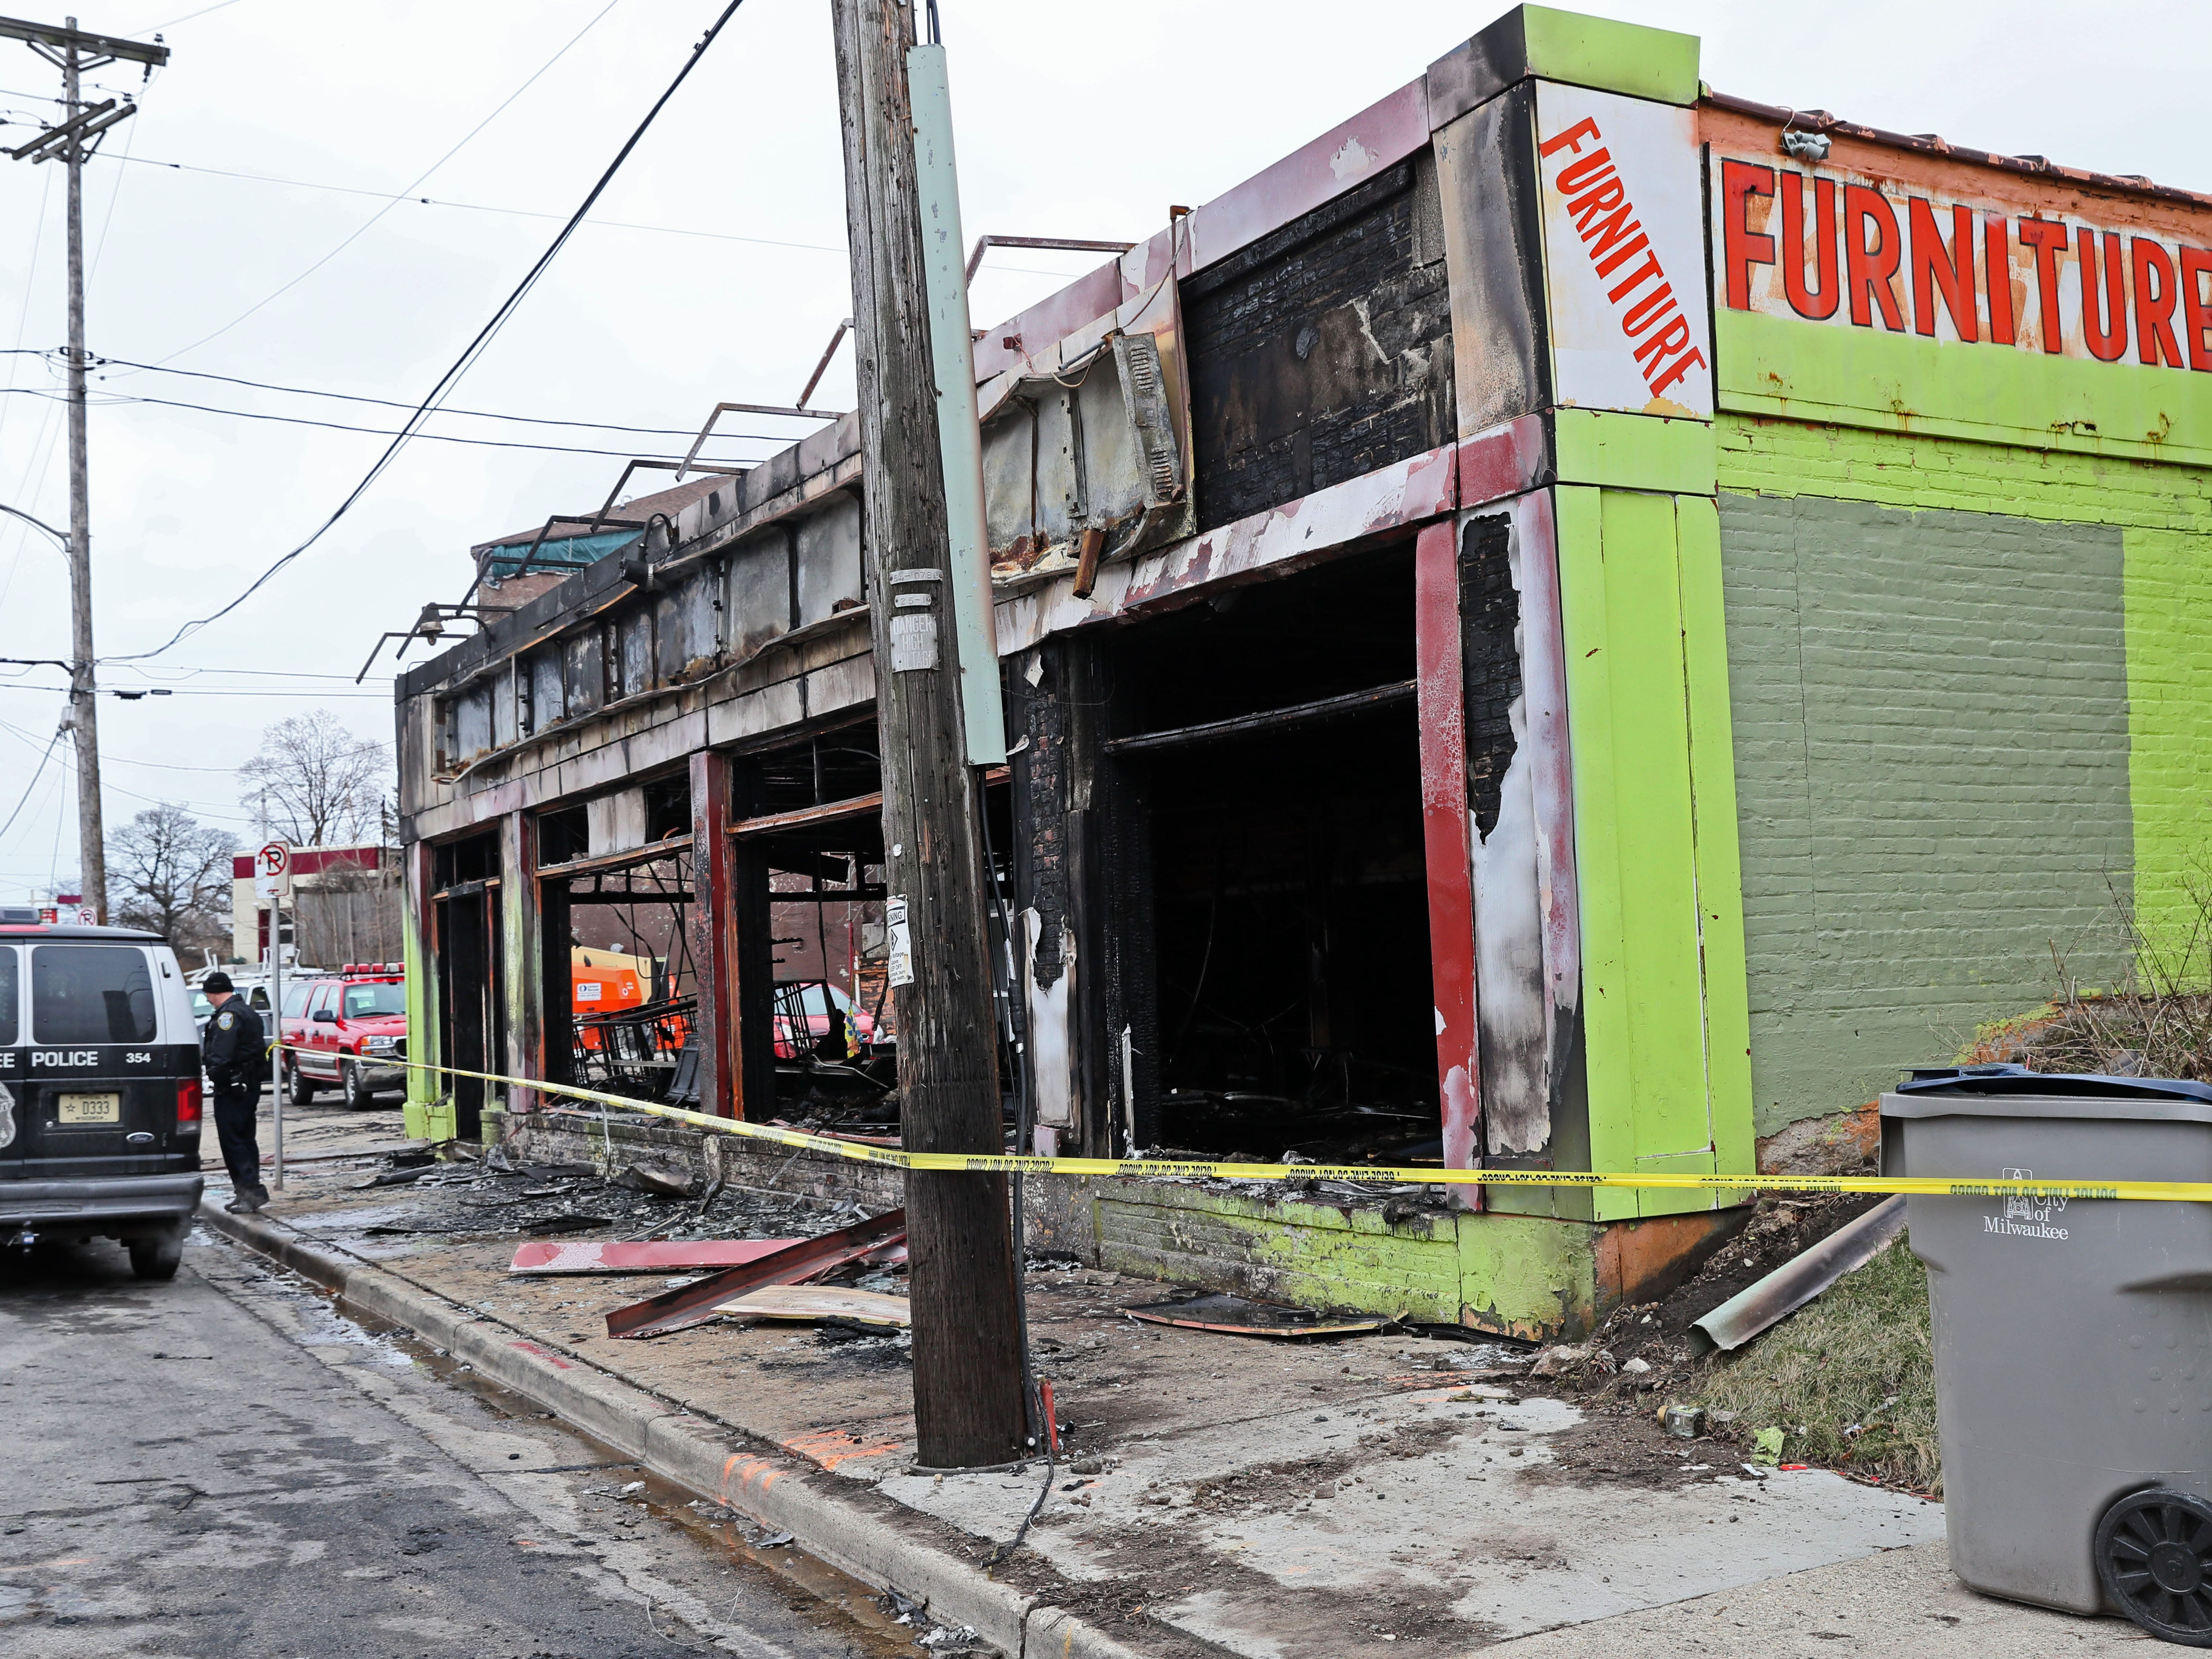 A fire about 6:55 p.m. Saturday destroyed a furniture store at South 25th Street and West Lincoln Avenue in Milwaukee.